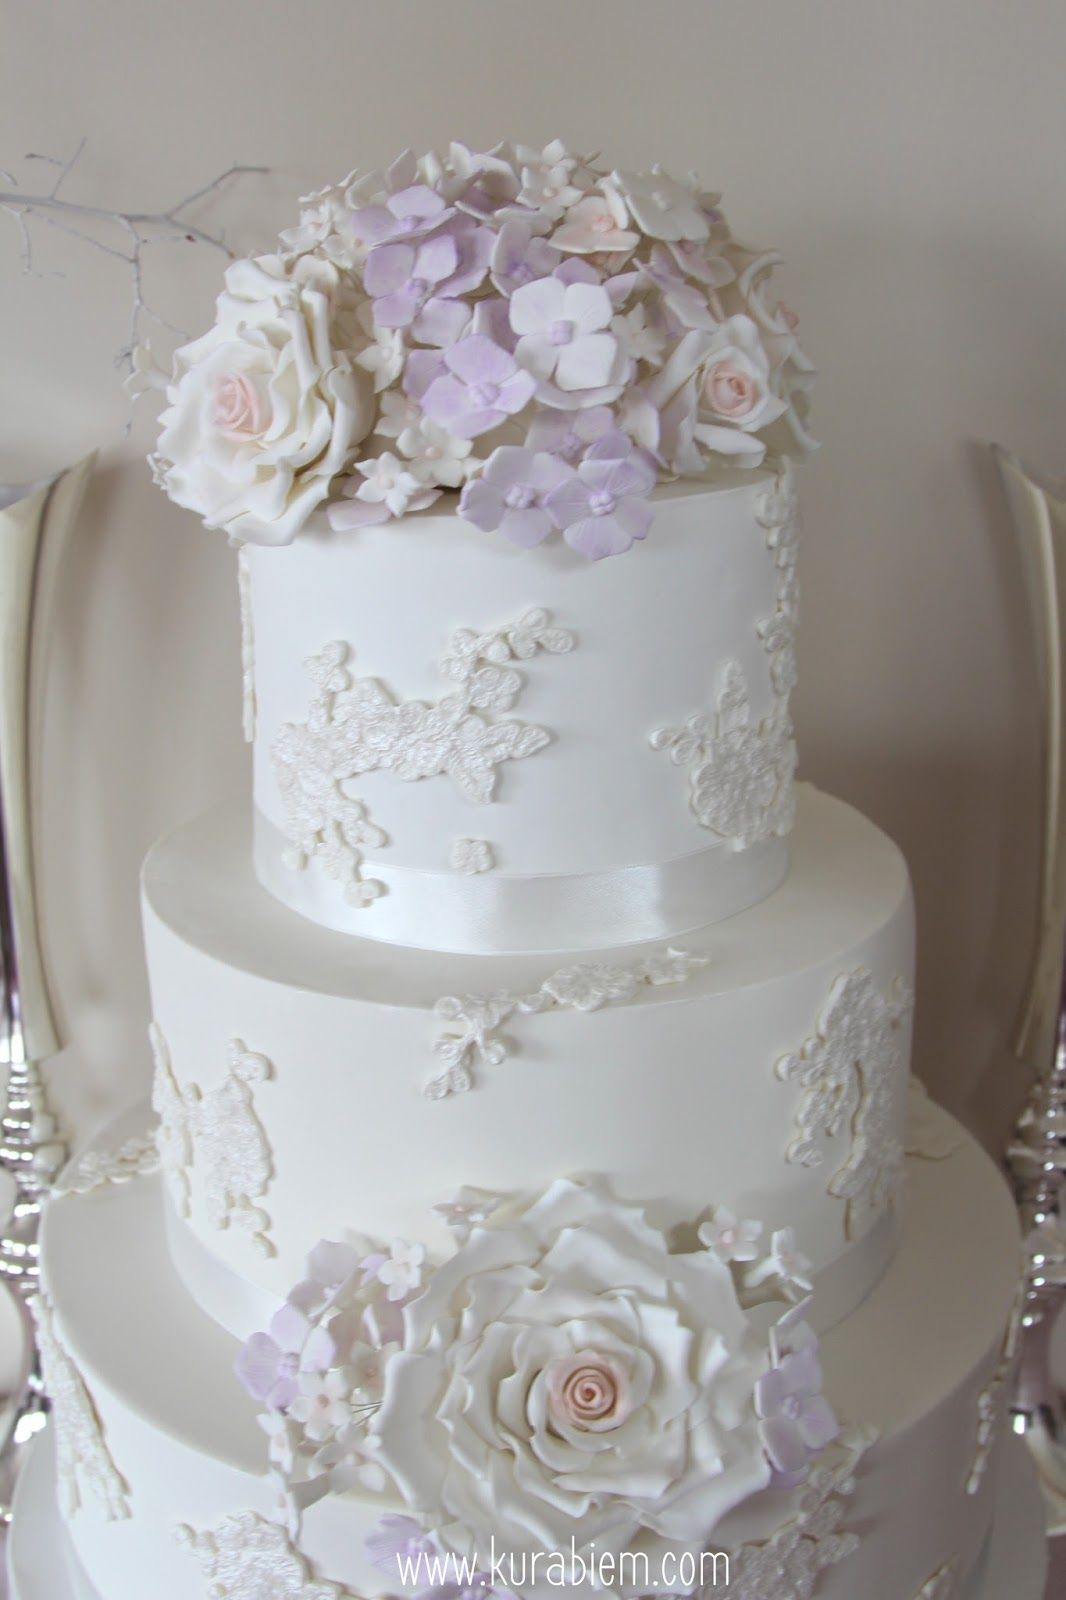 Wedding Cake Dn Pastas Engagement Cake Nian Pastas